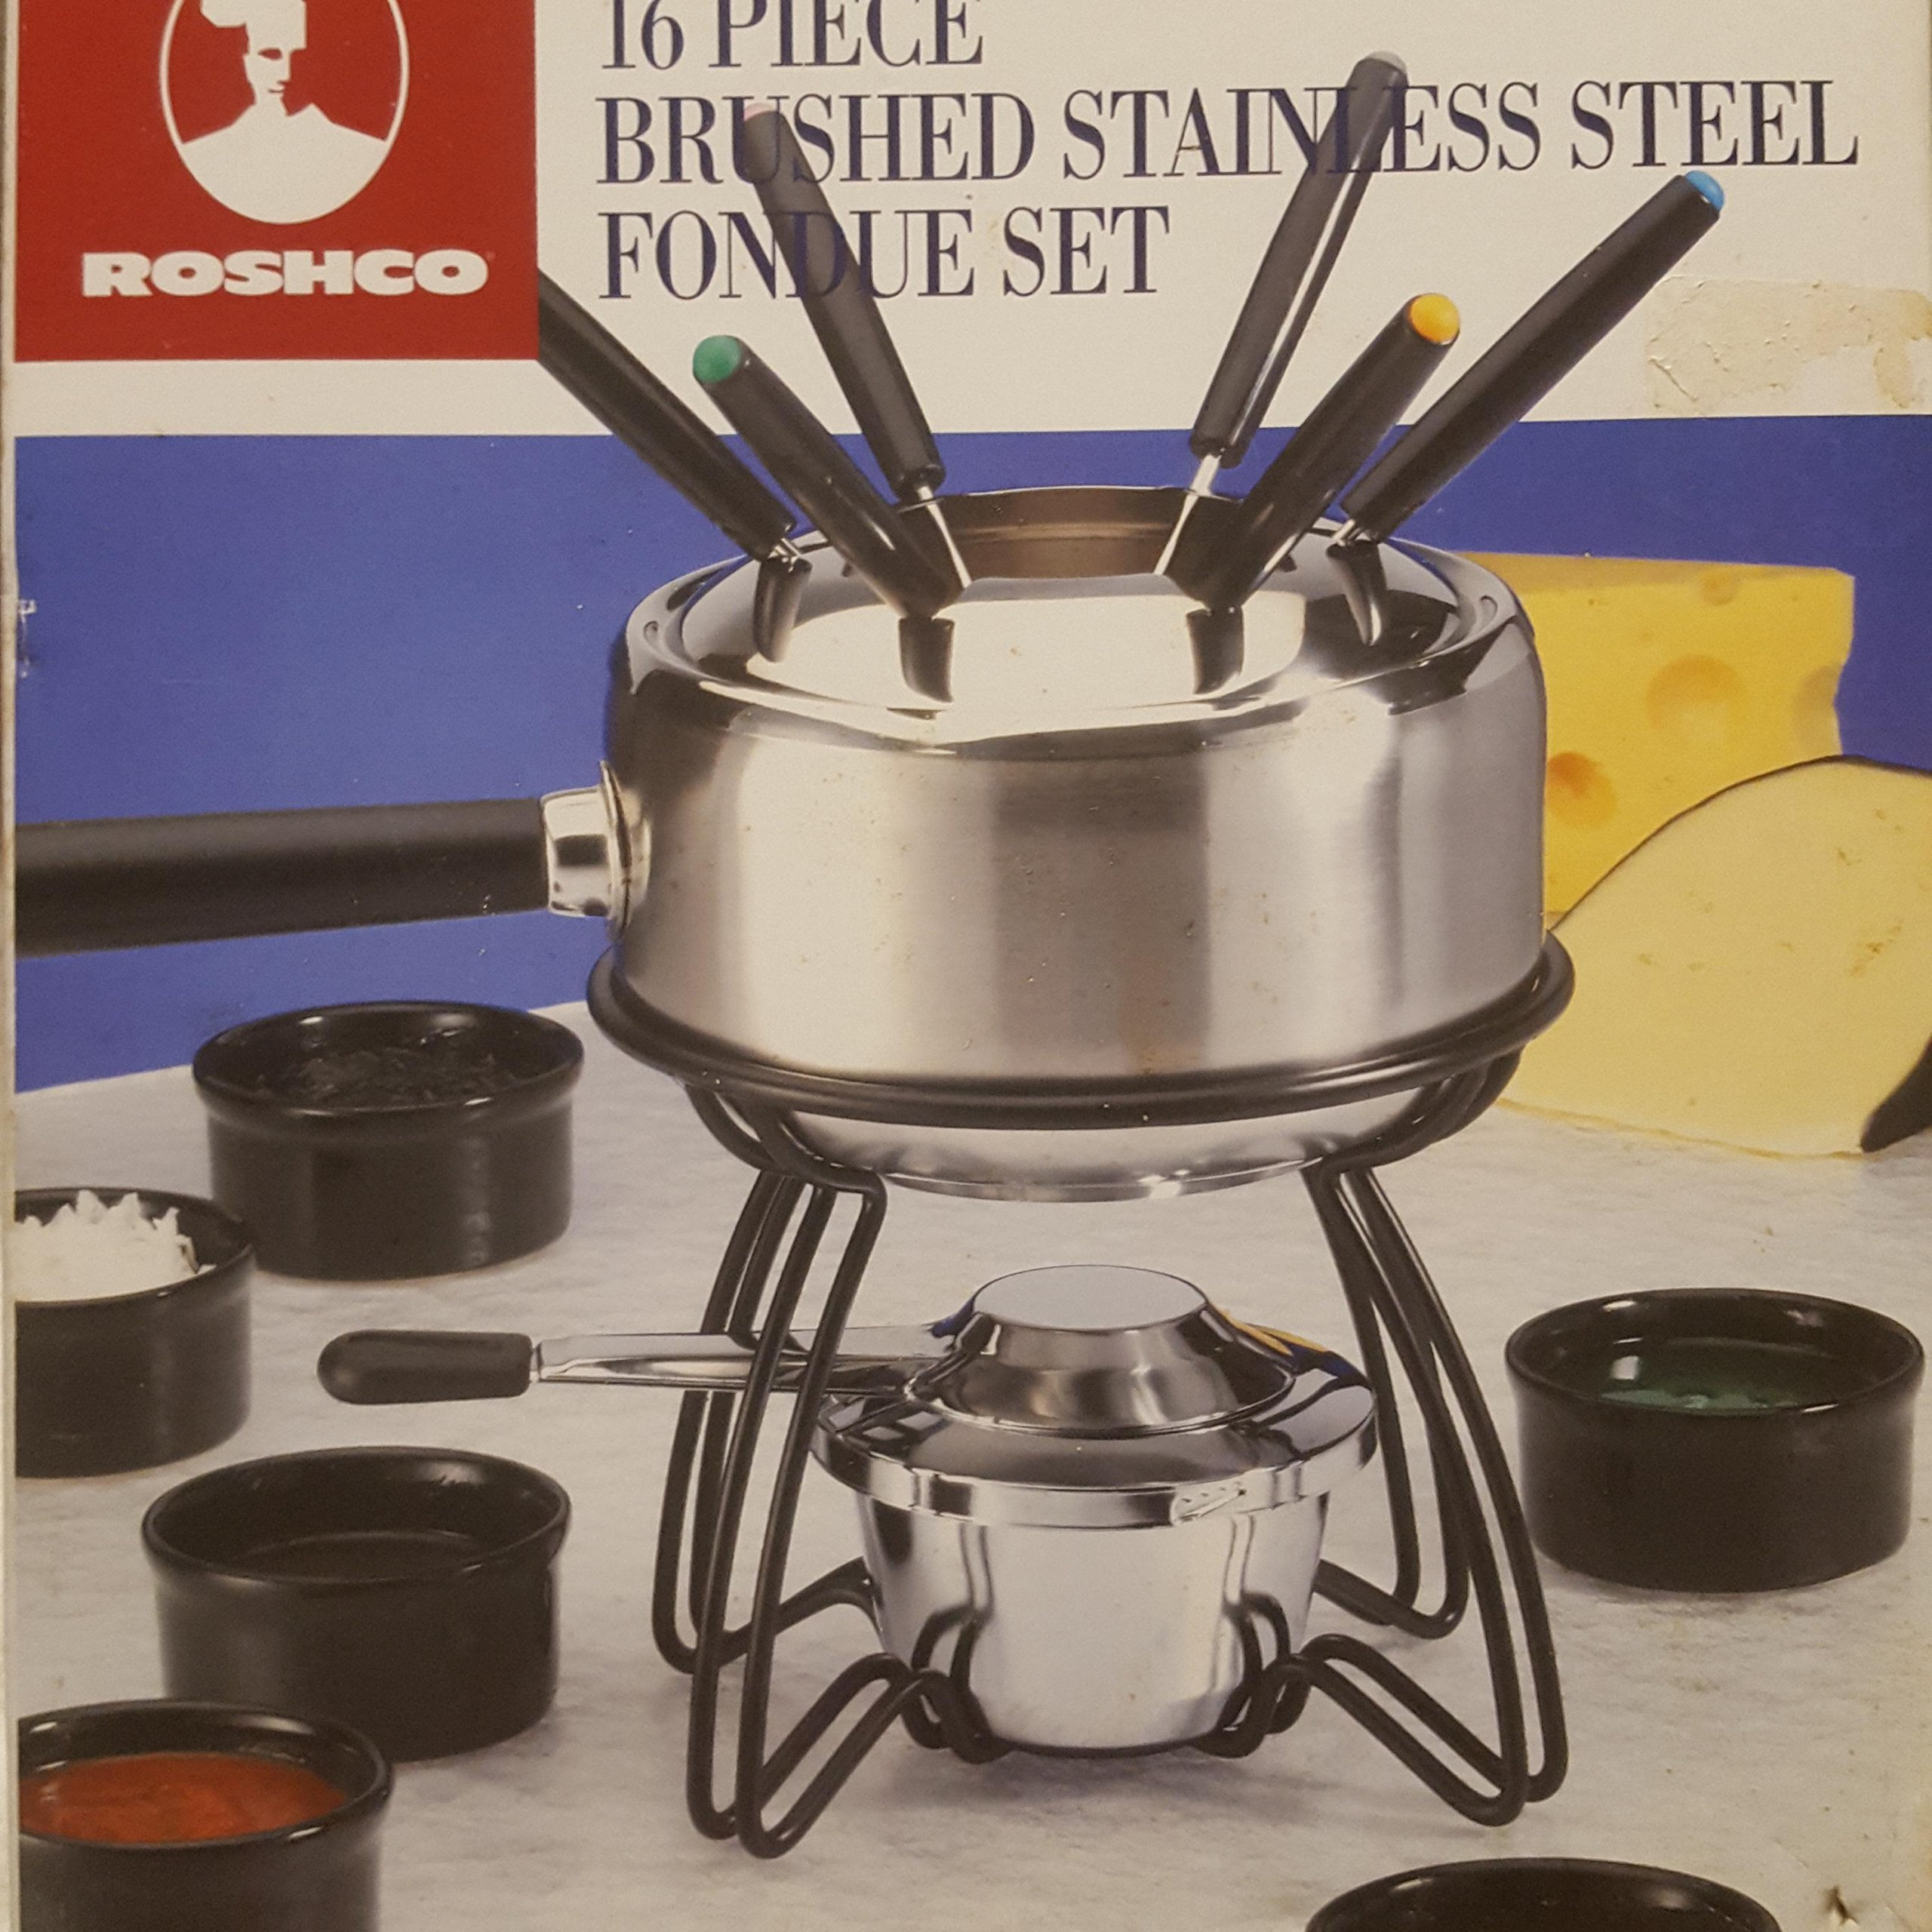 16 Piece Brushed Stainless Steel Fondue Set By Roshco by ROSCHCO